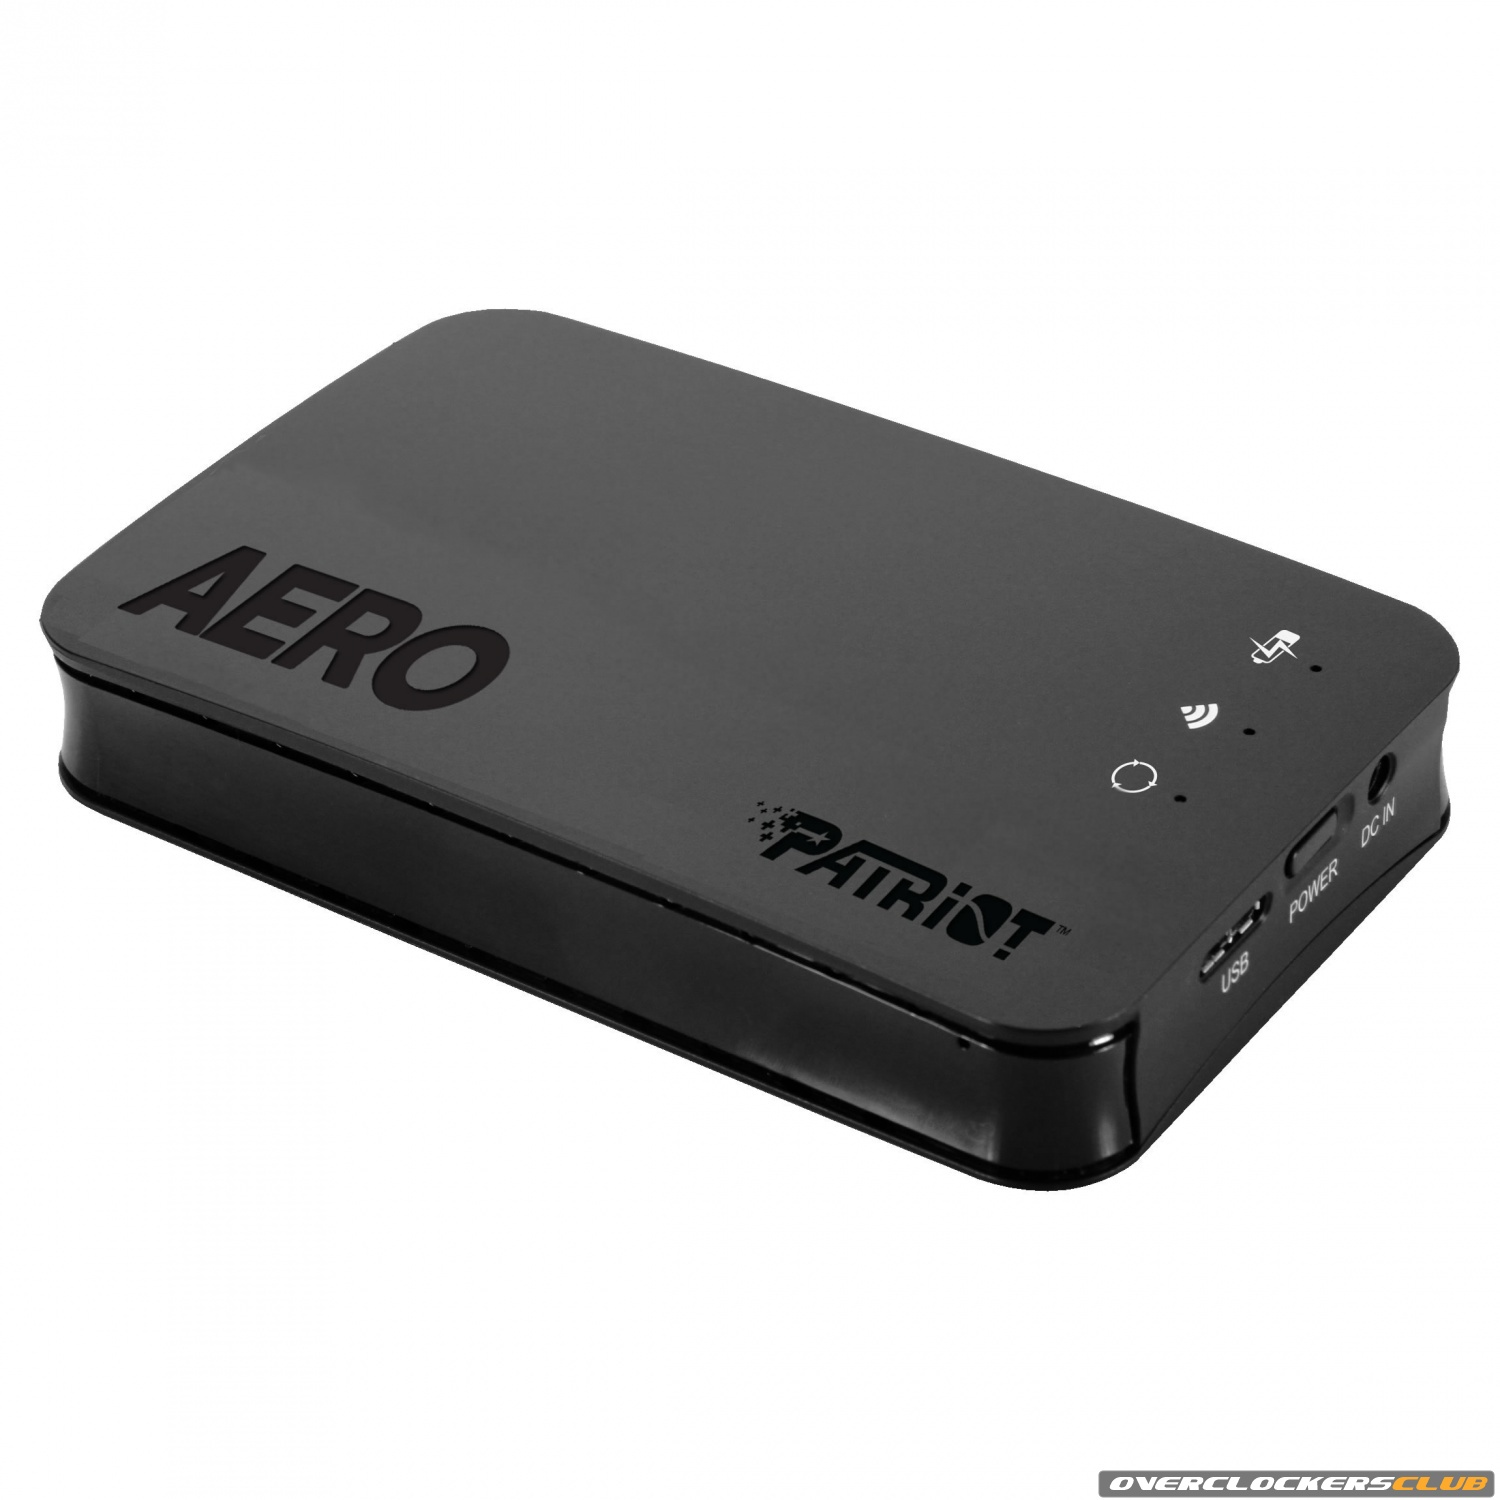 Patriot Announces AERO Mobile Hard Drive